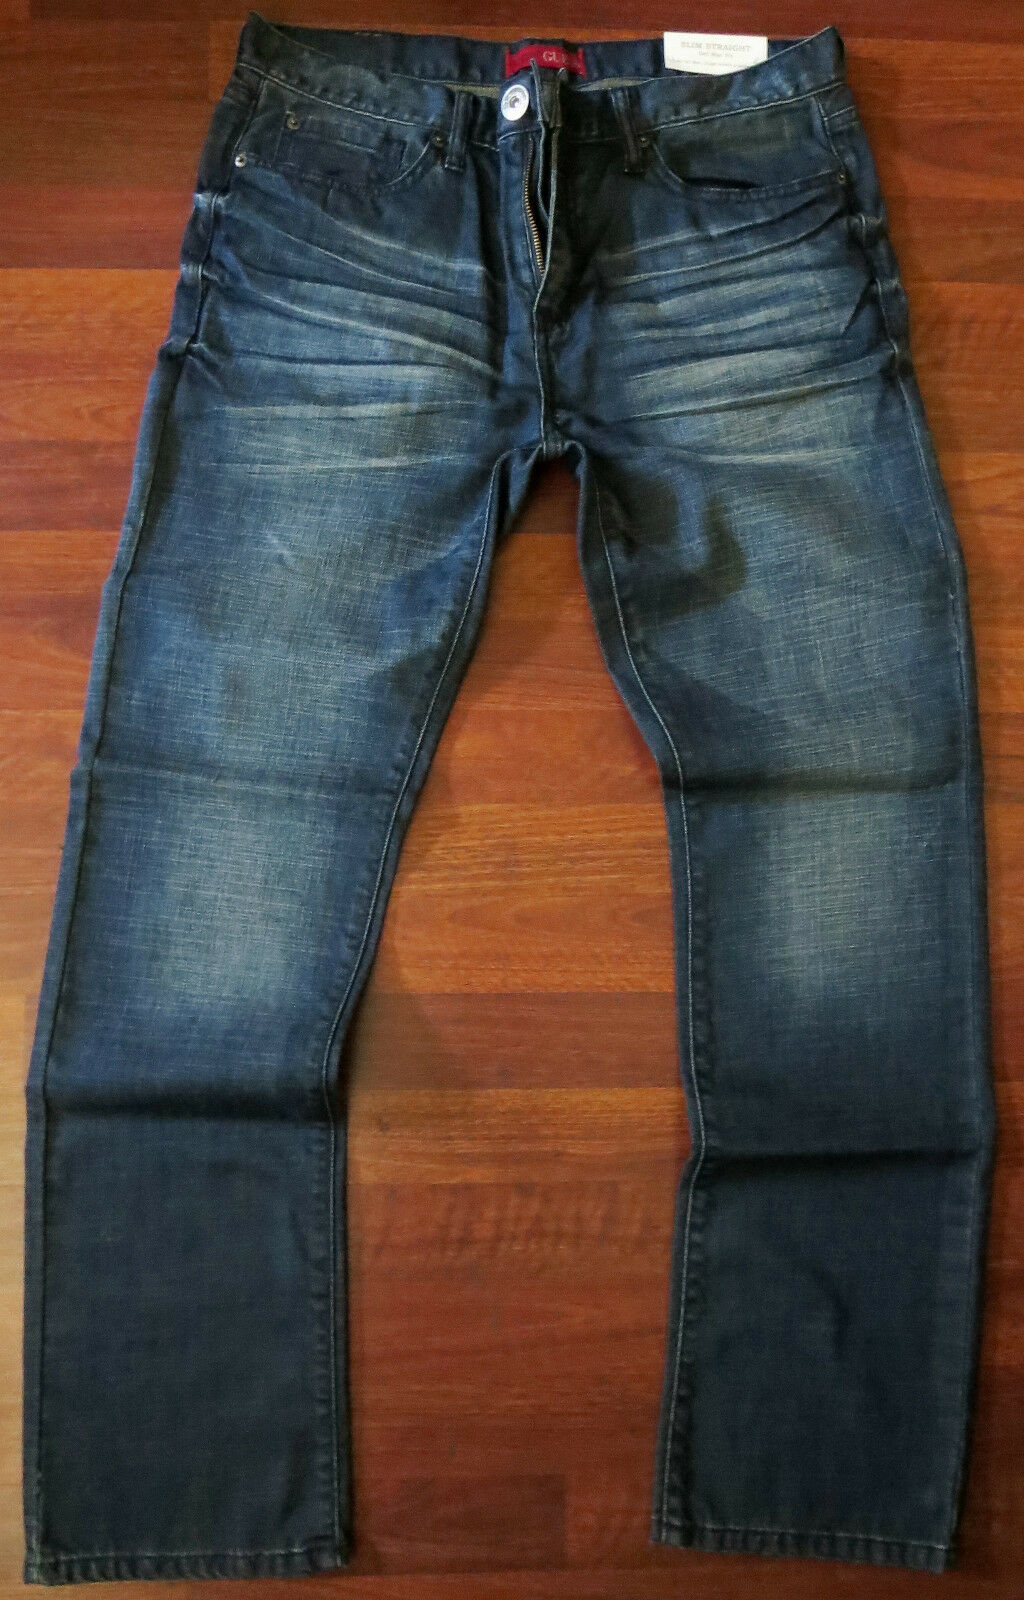 Guess Slim Straight Leg Jeans Mens Size 32 X 32 Classic Vintage Distressed Wash